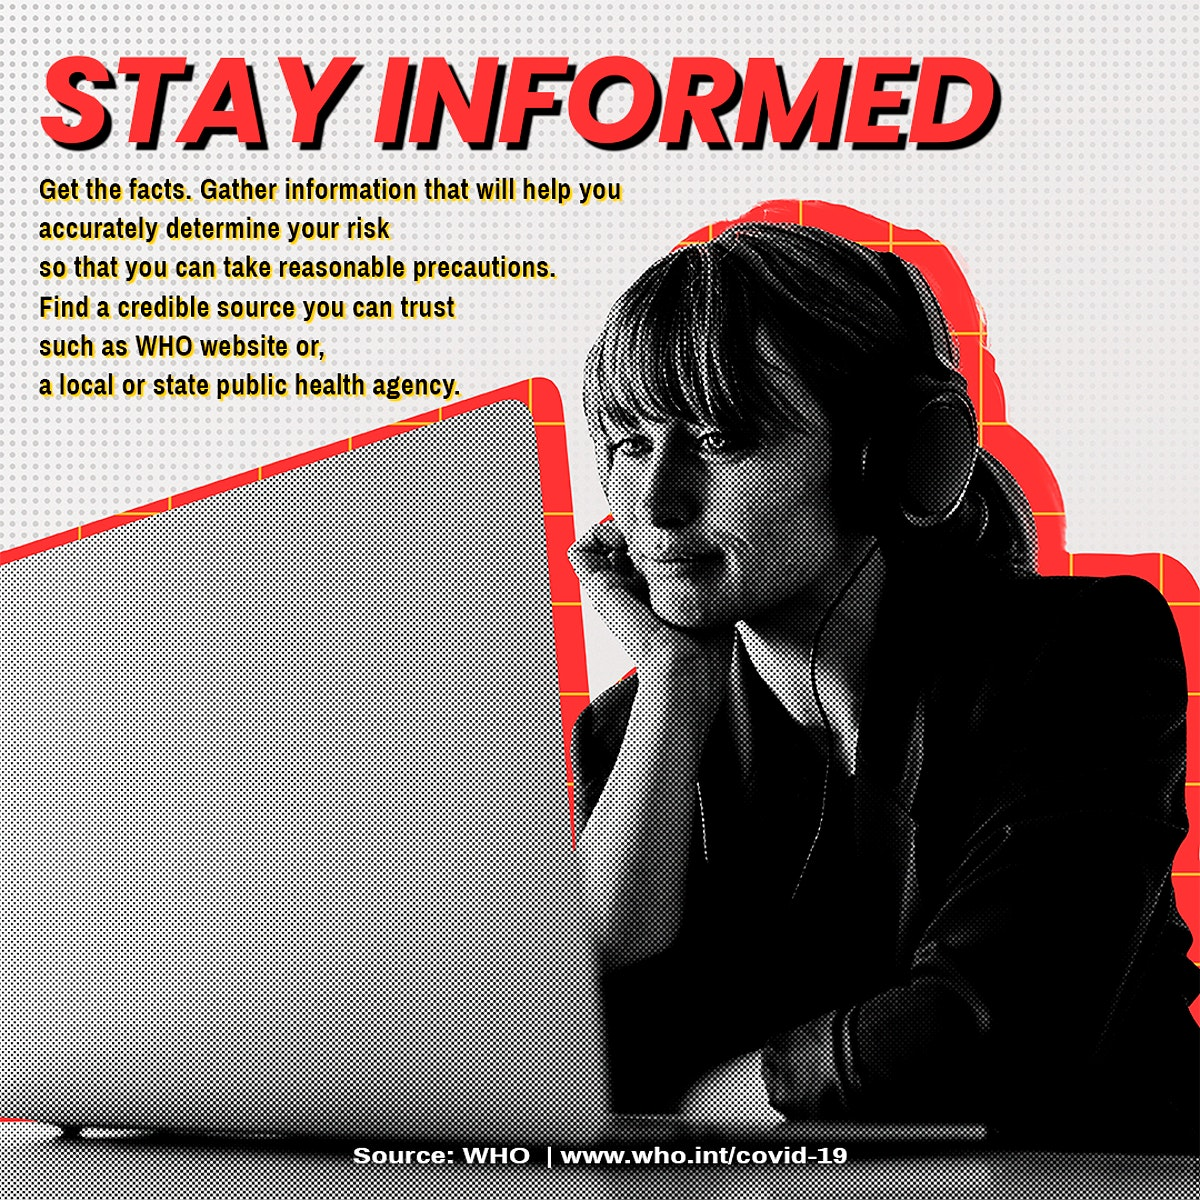 Stay informed and find a credible source you can trust template source WHO